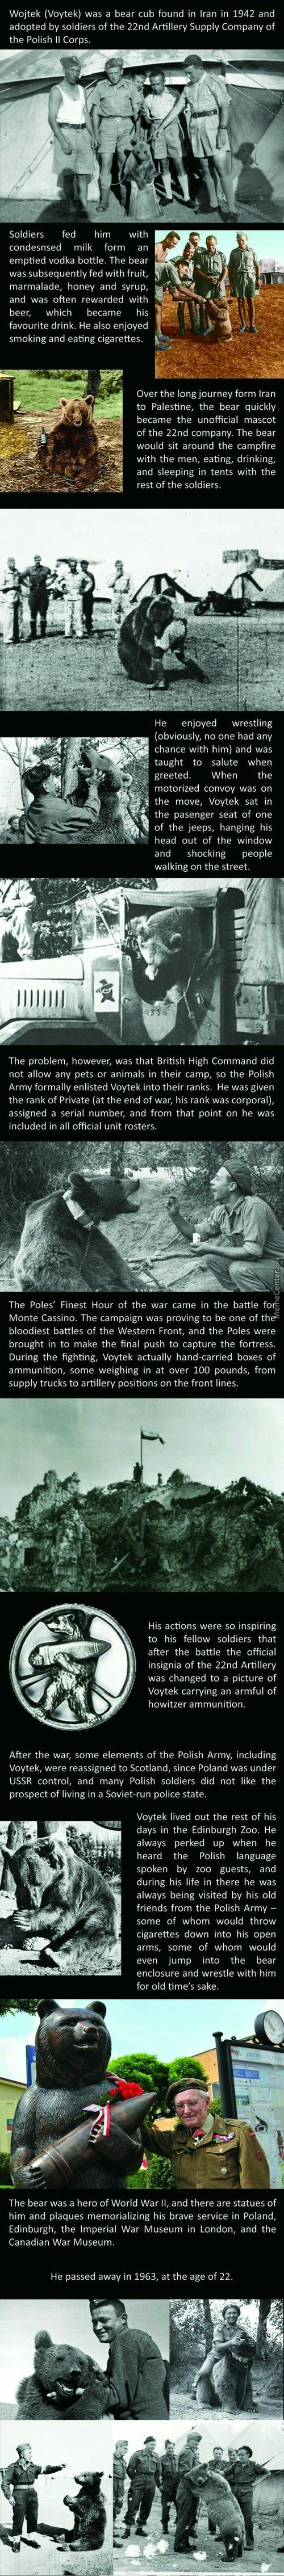 Voytek The Soldier Bear